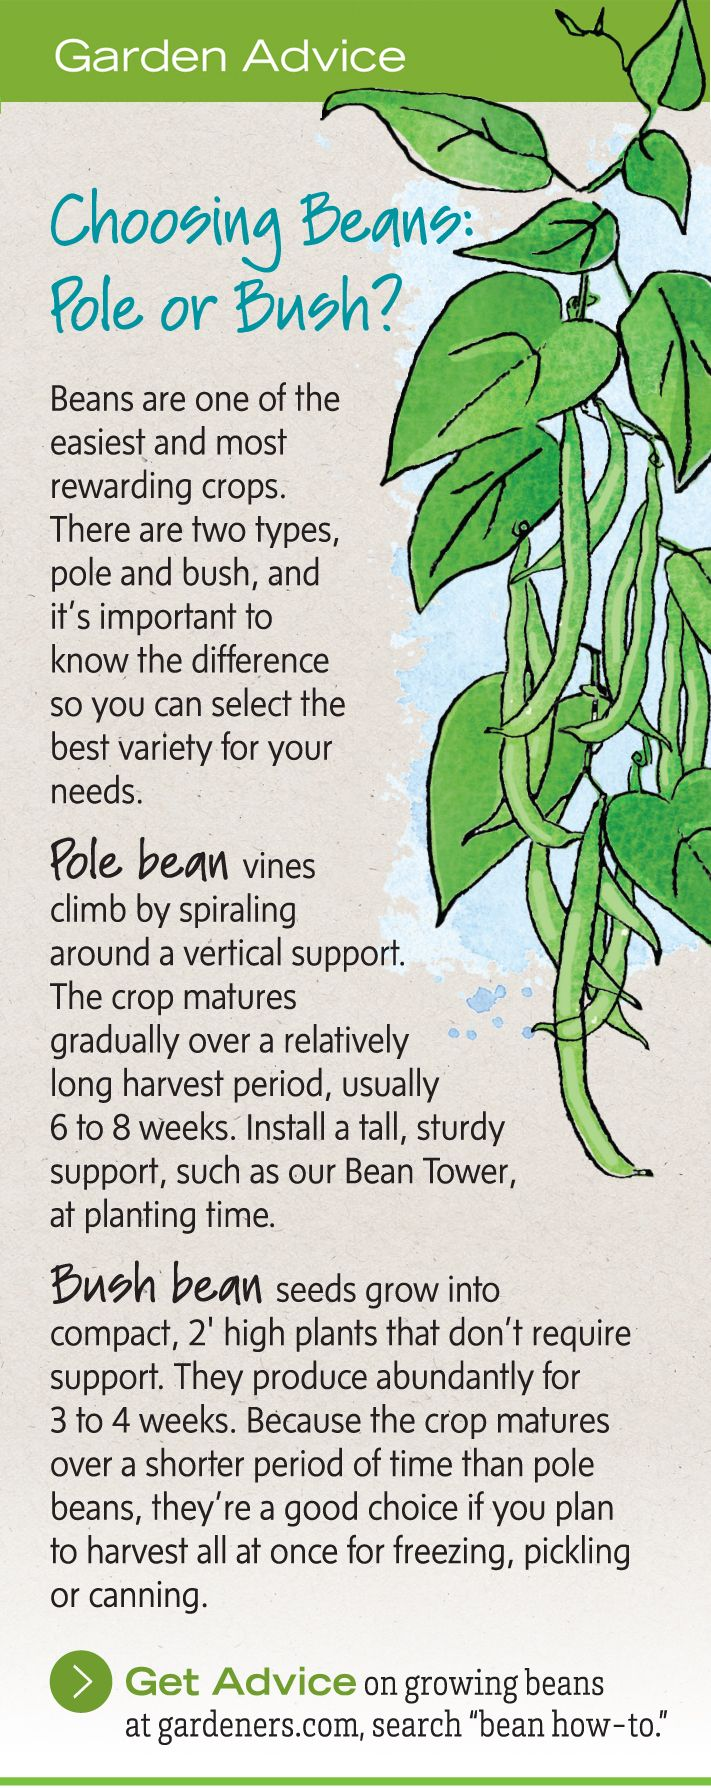 Growing Green Beans - How to Grow Pole Beans, Bush Beans